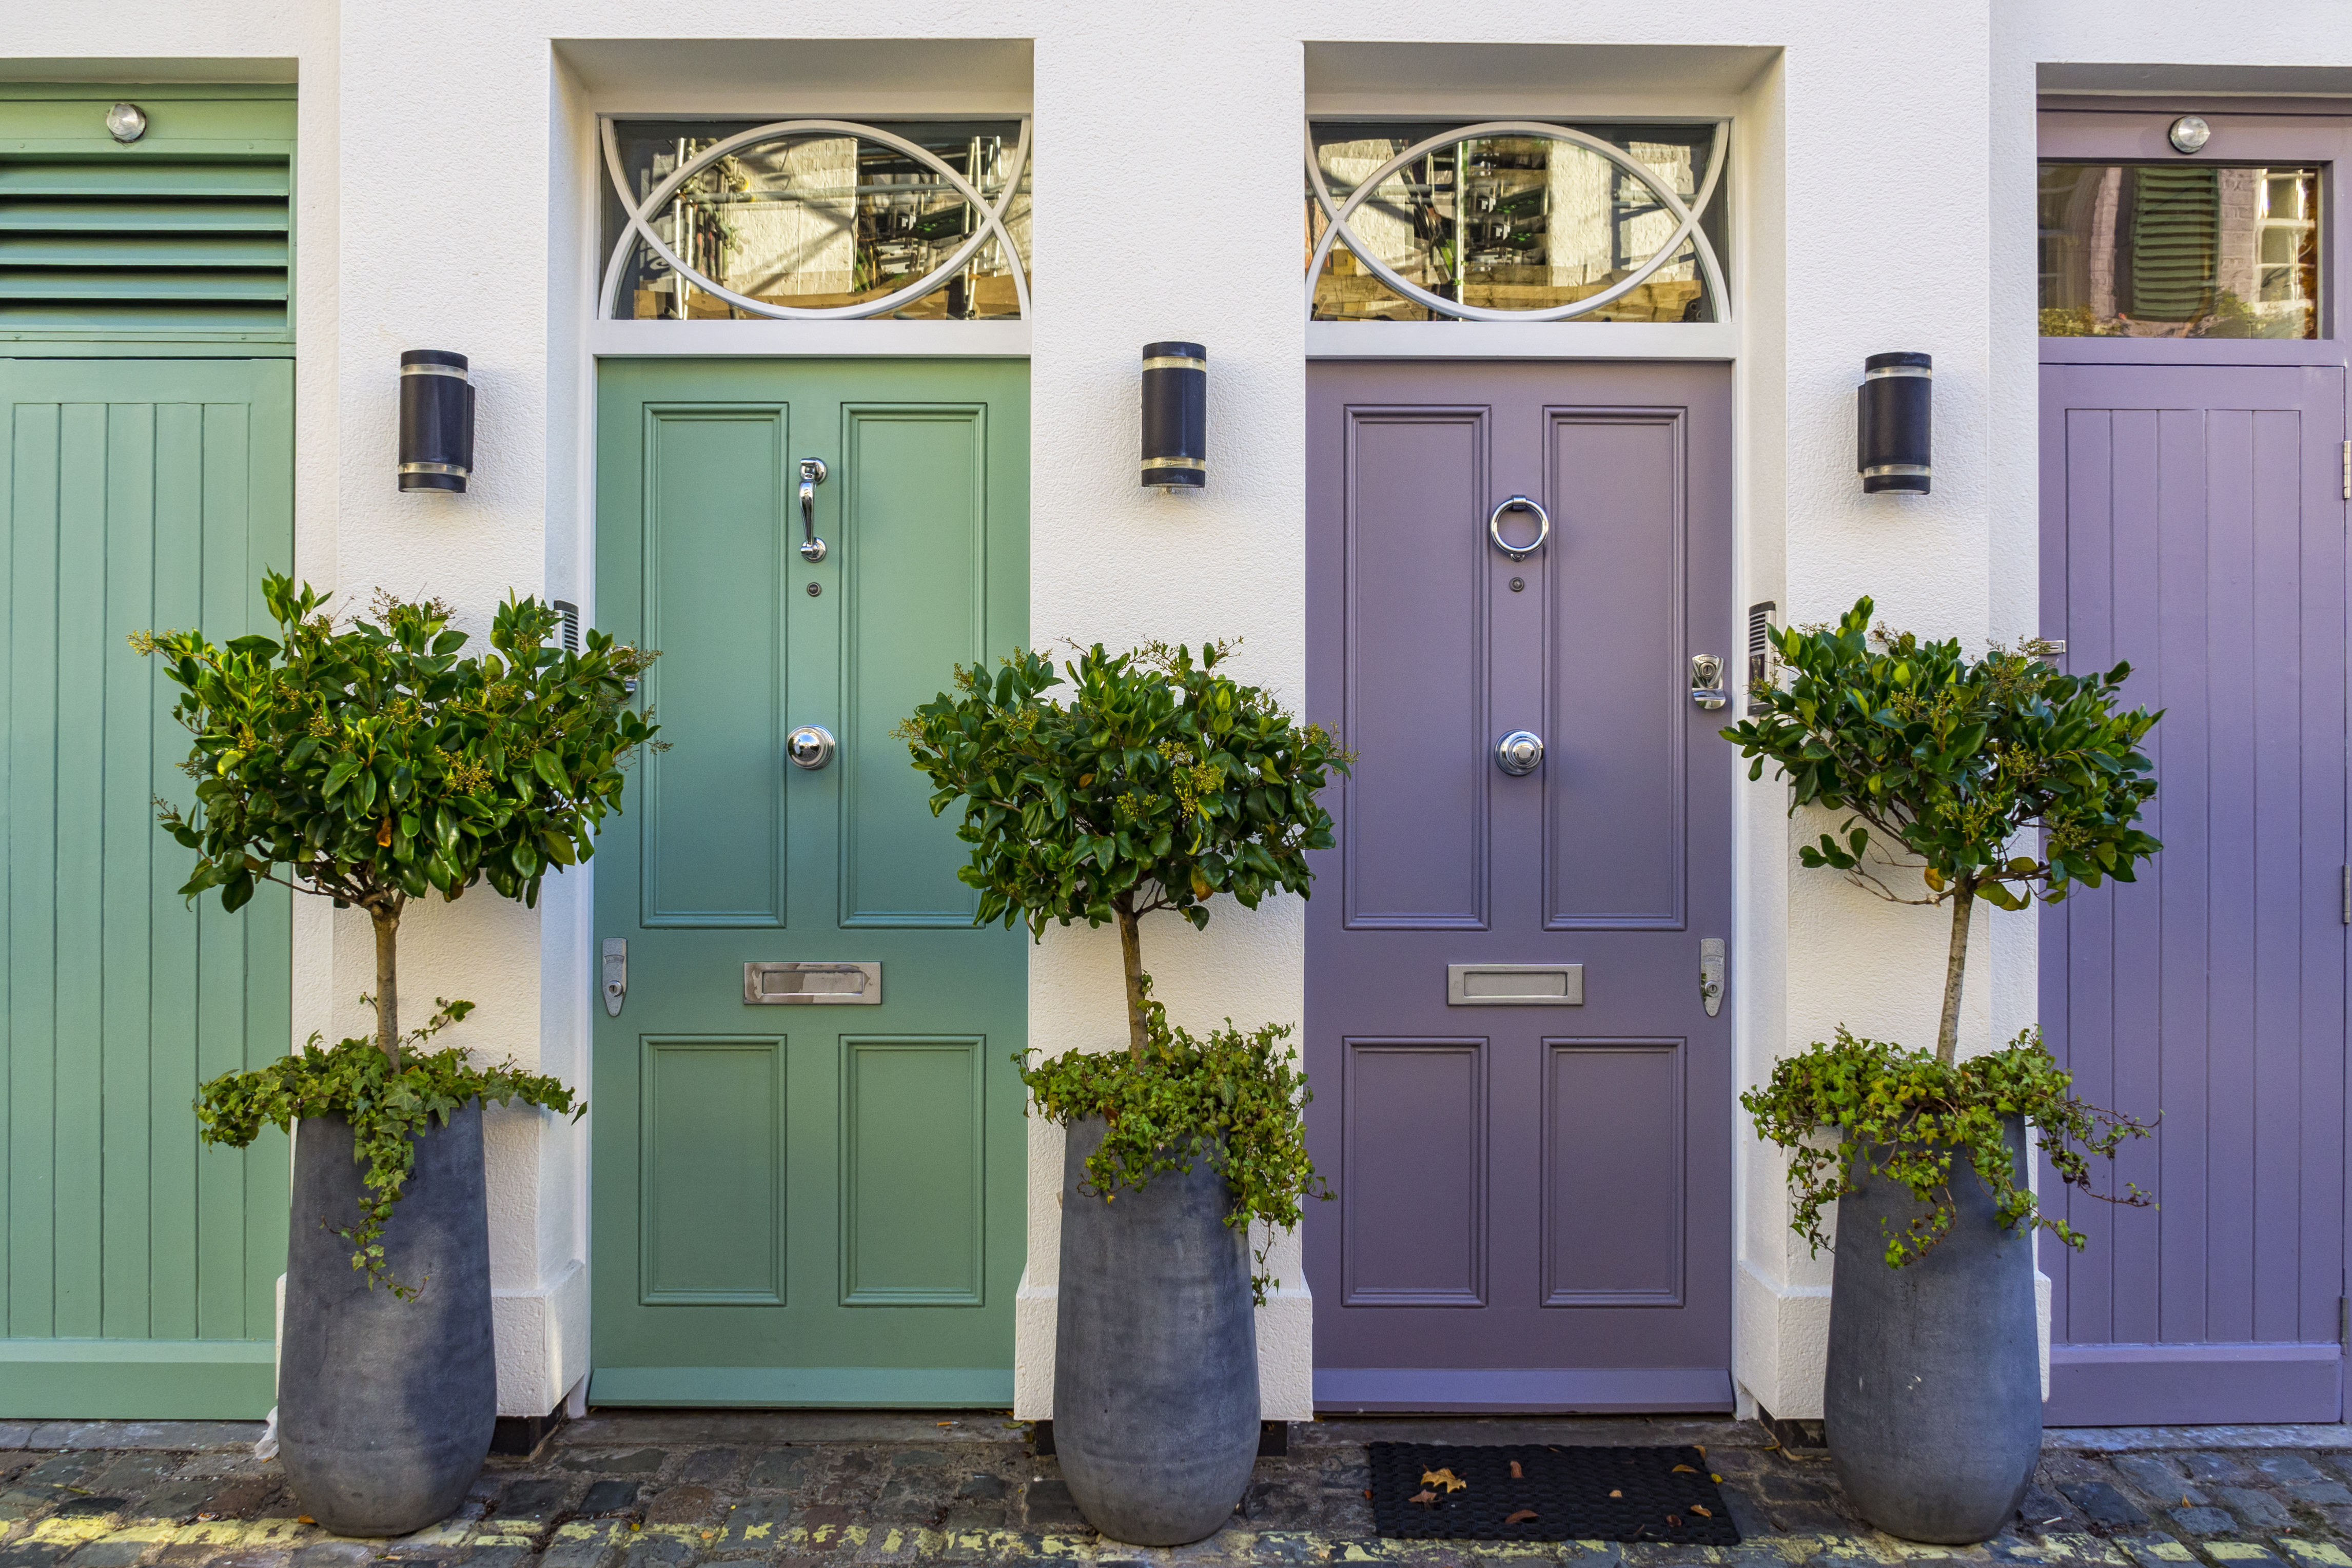 Row of residential front doors in different colours. Doors are purple and green with green trees in between each door.